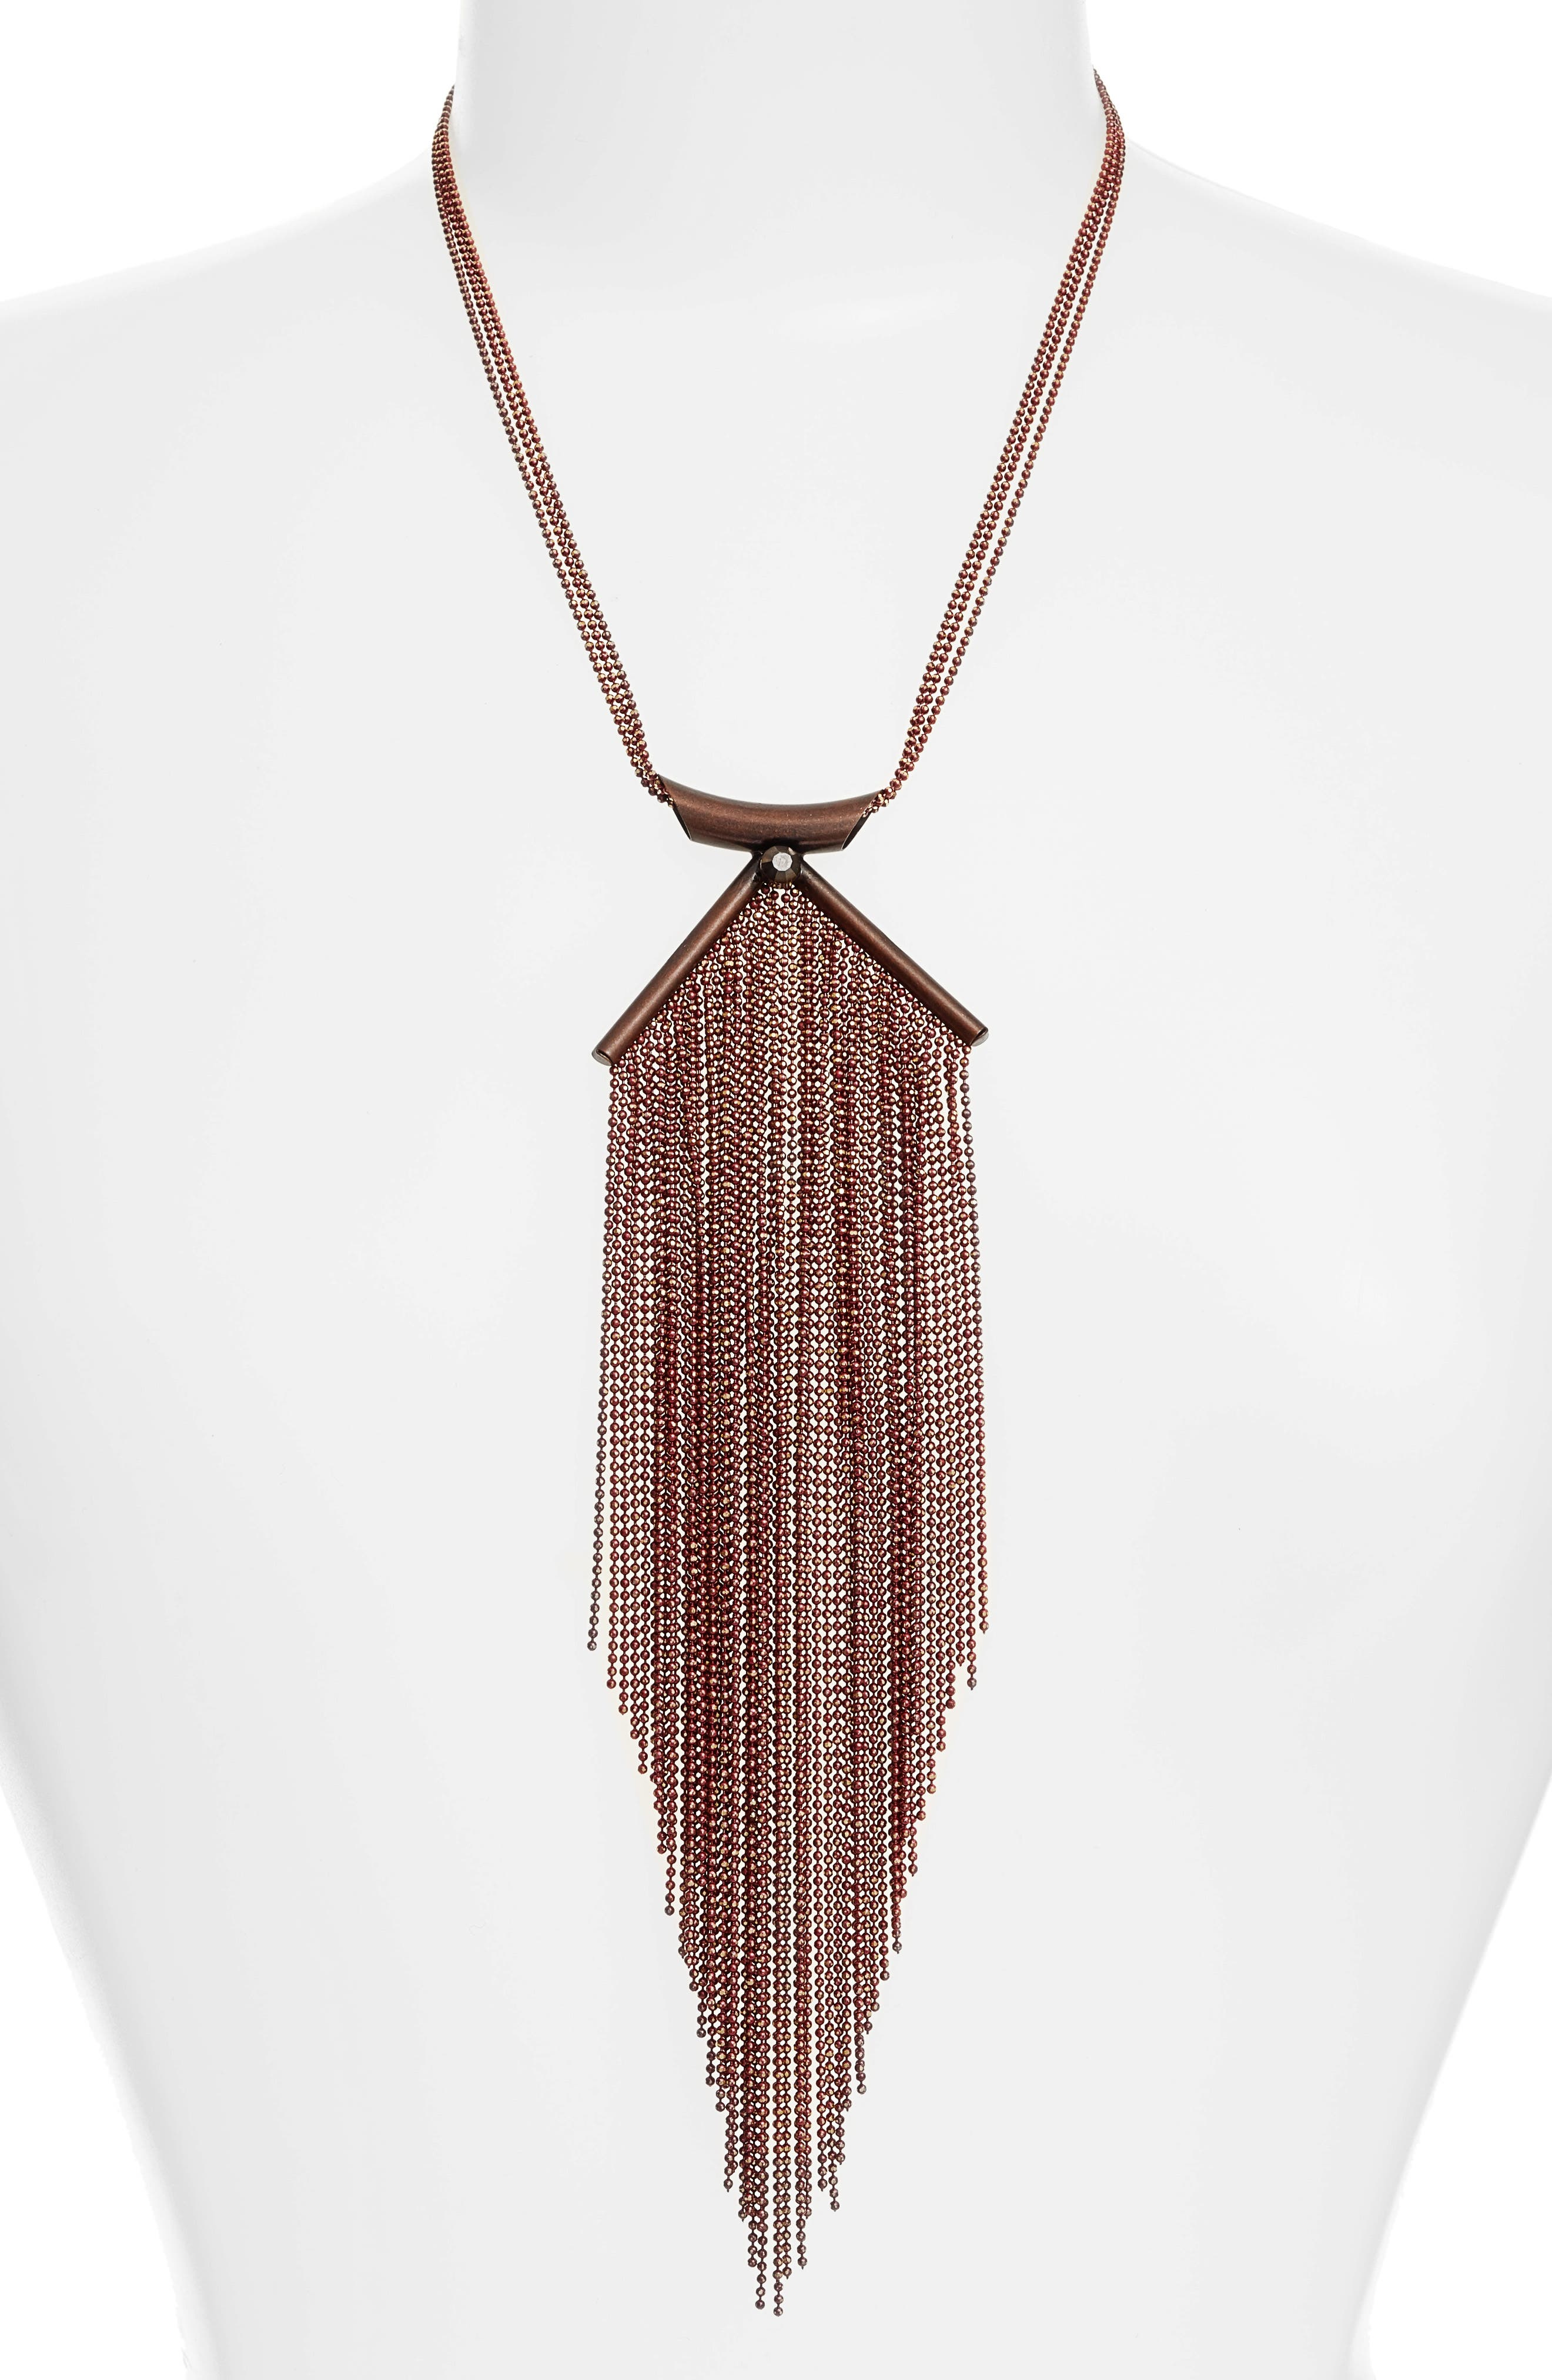 Karine Sultan Lina Waterfall Necklace